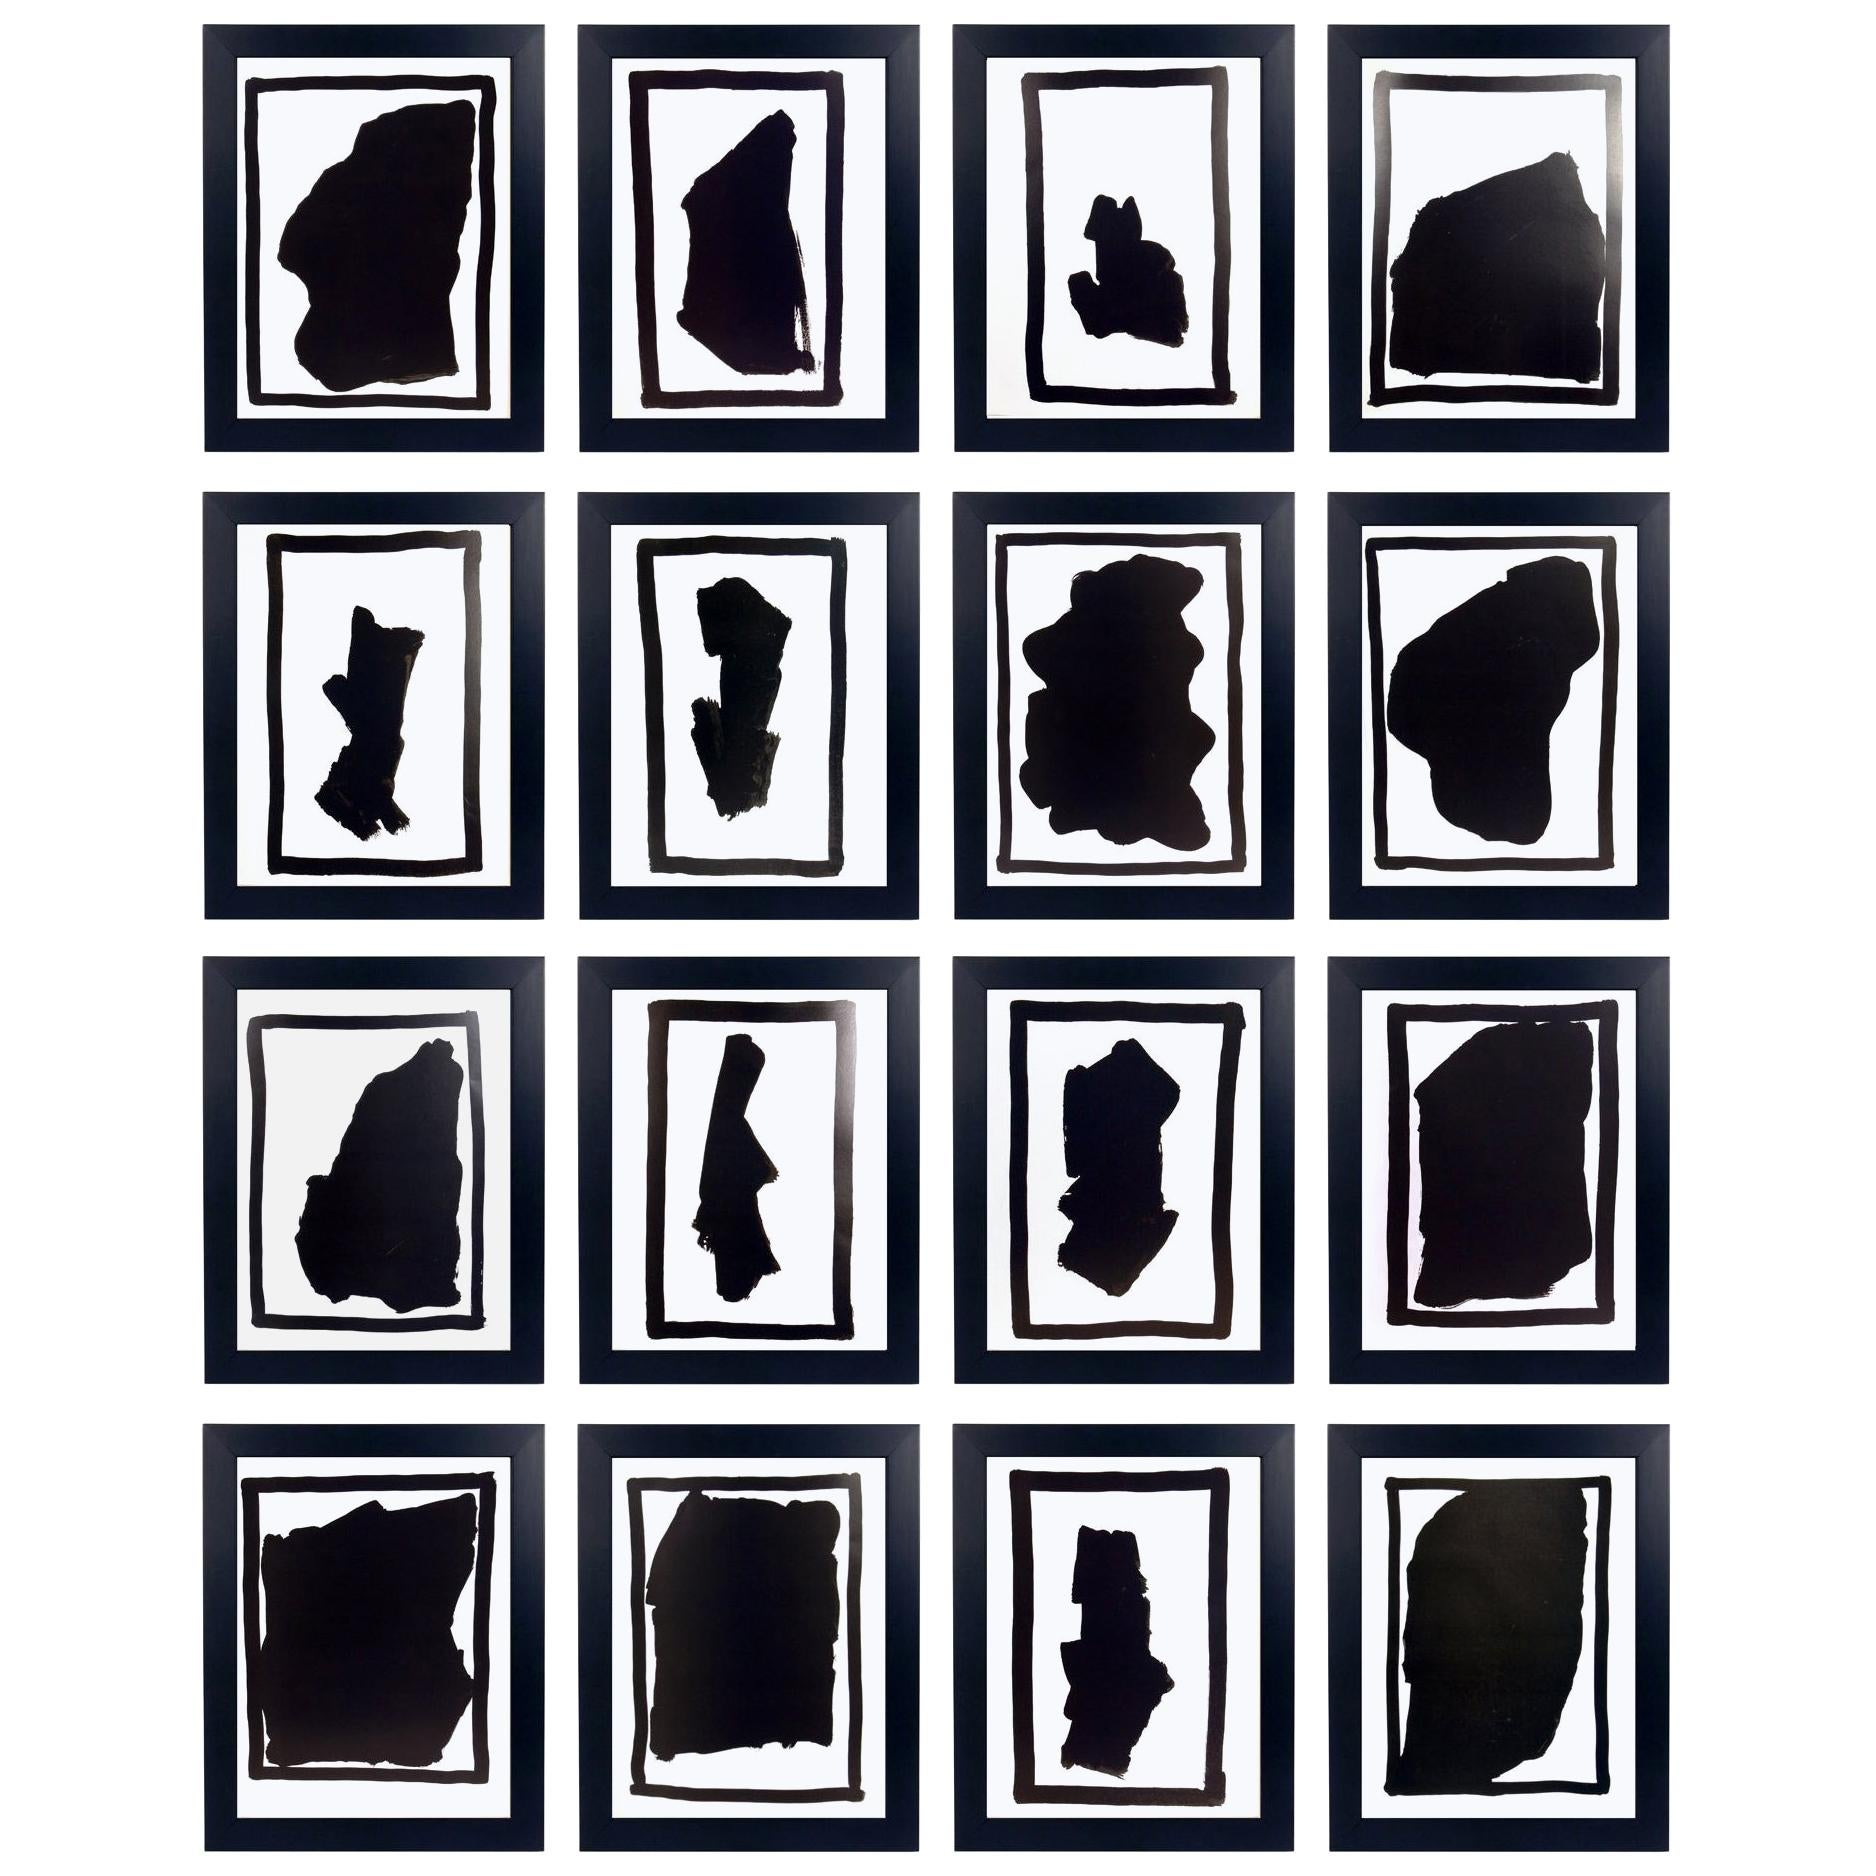 Group of Sol LeWitt Abstract Black and White Prints